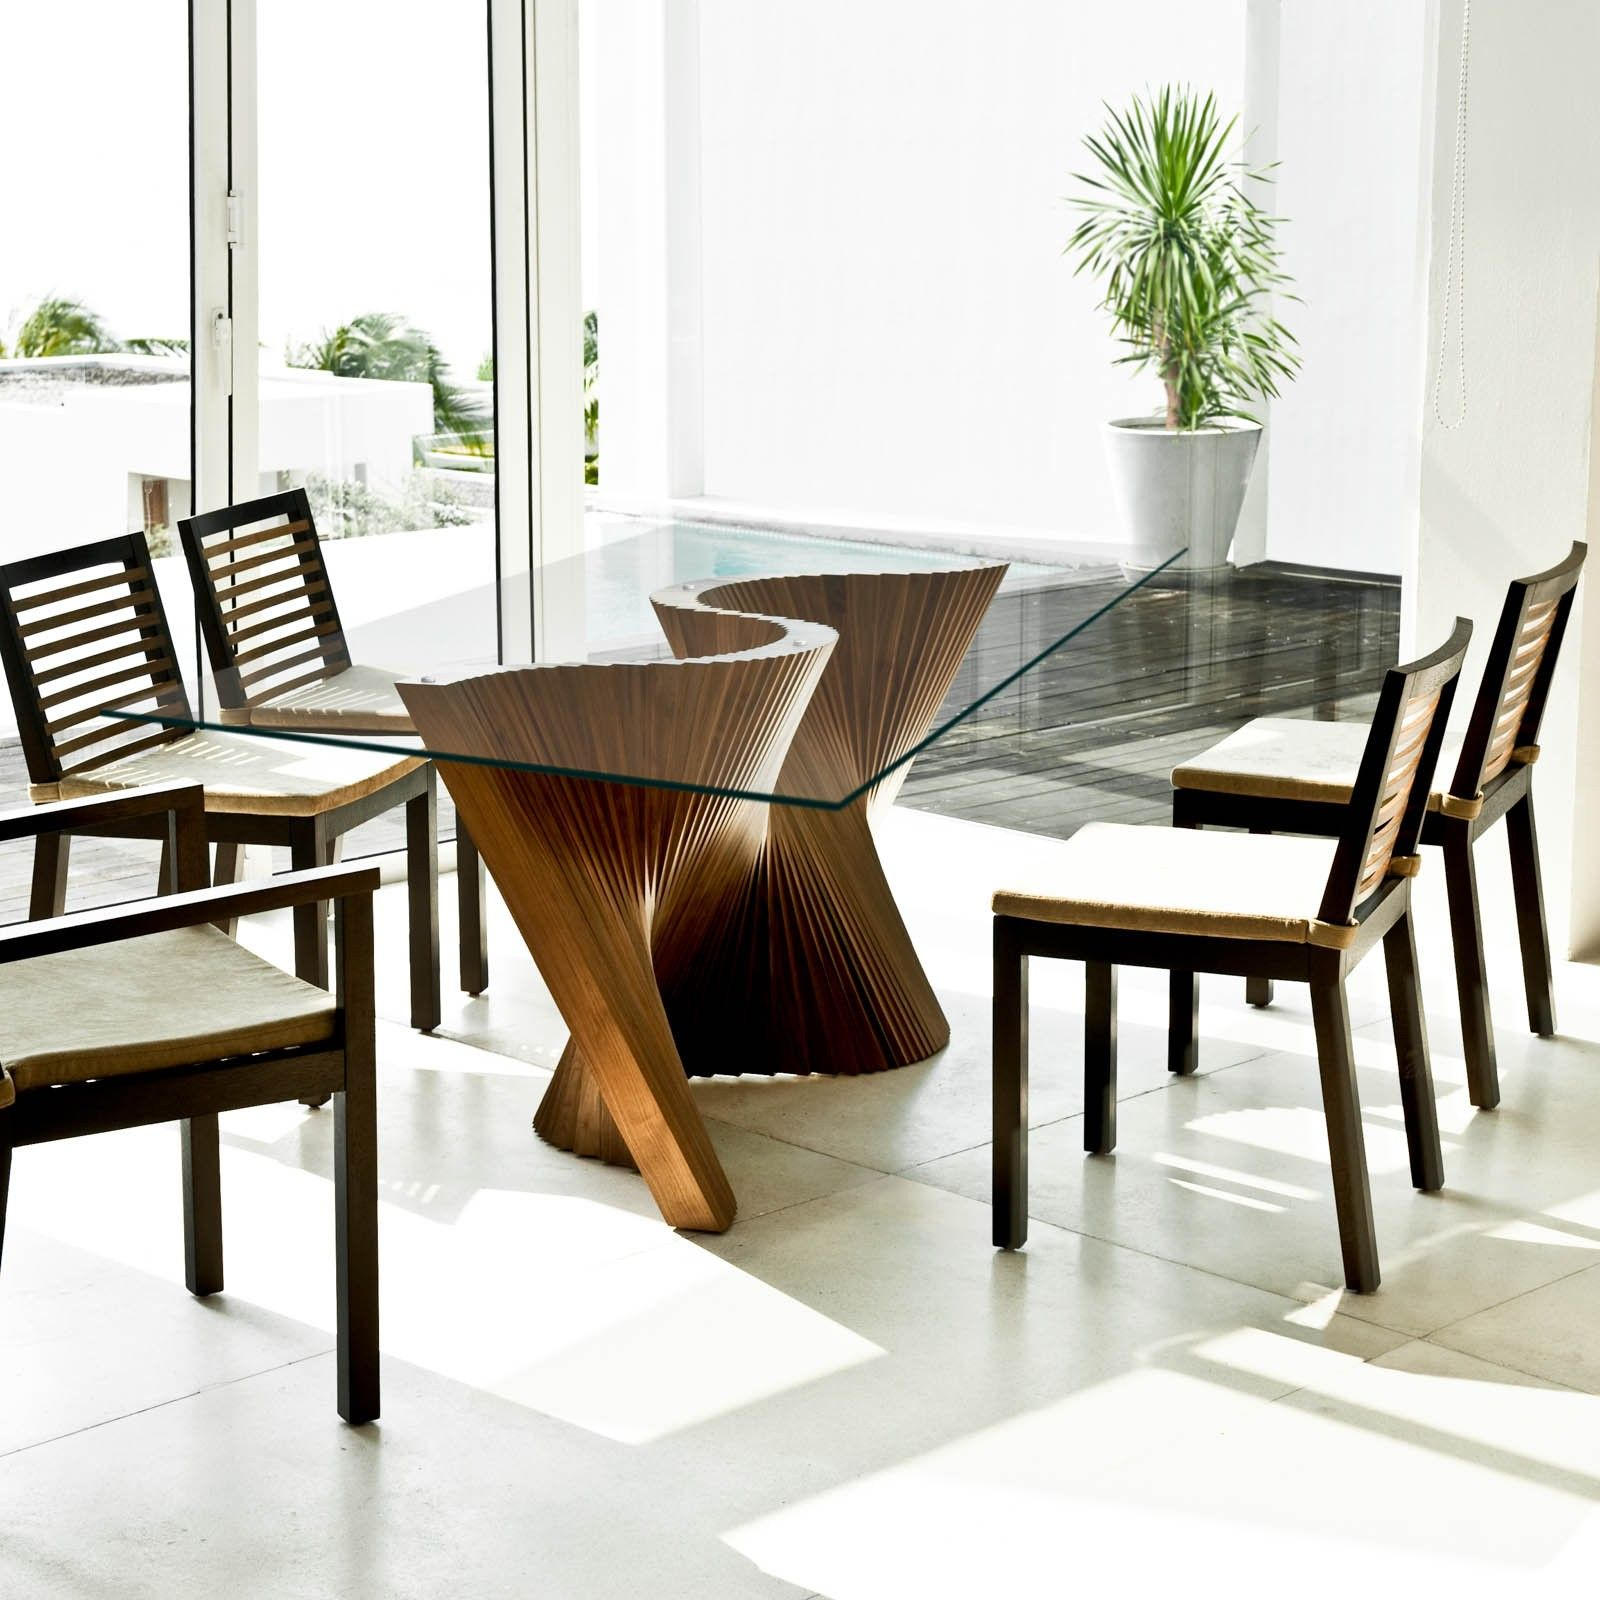 15 Small Dining Room Table Ideas Tips: Residential And Contract